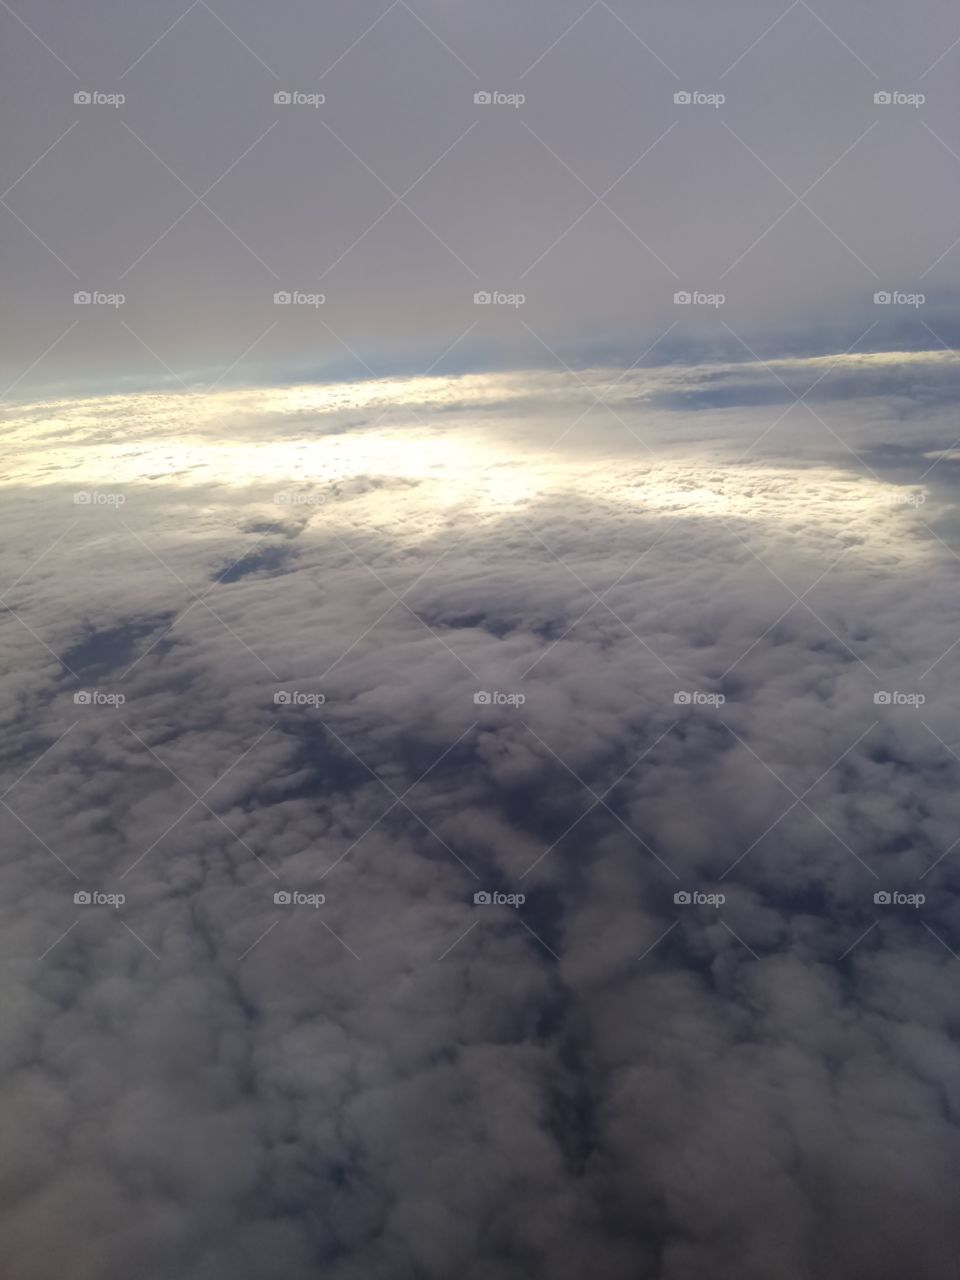 Over the clouds. Photo taken from the airplane.